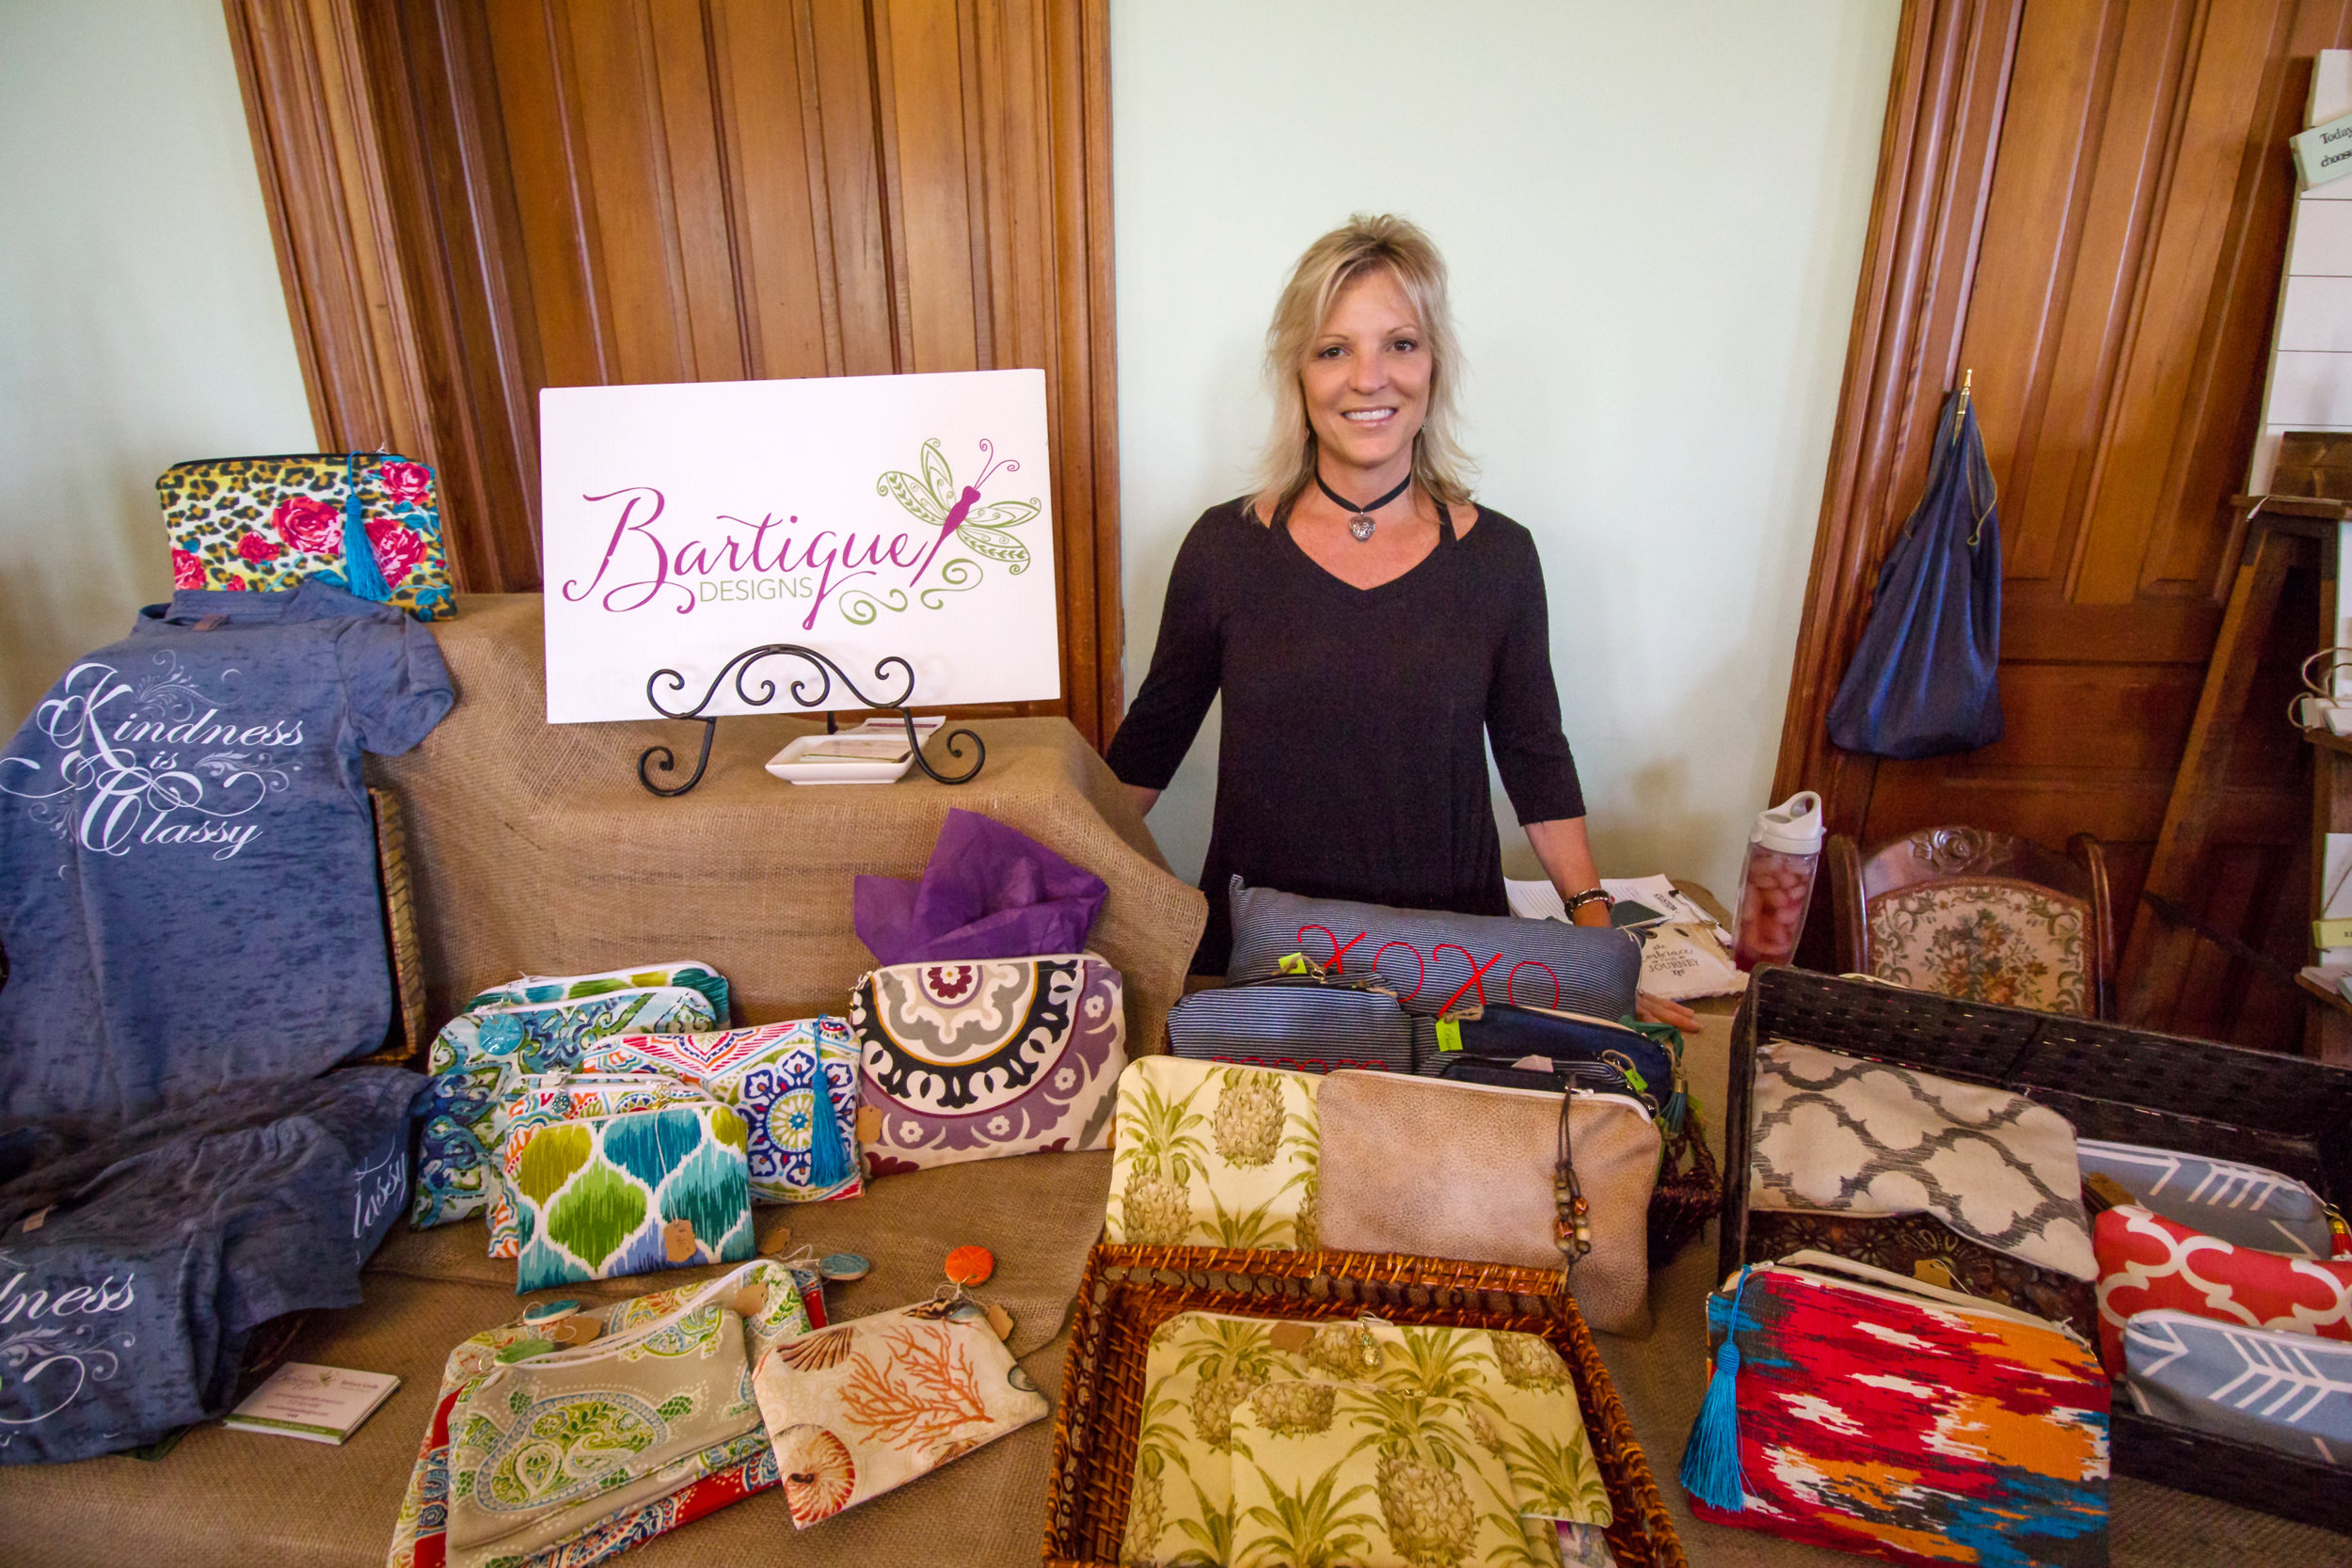 Barbara Kindle, Creative Director of   Bartique! Designs   ::We create beautiful infinity scarves, pouches and custom yoga mat bags. Place orders for our products on our website  www.bartiquedesigns.com